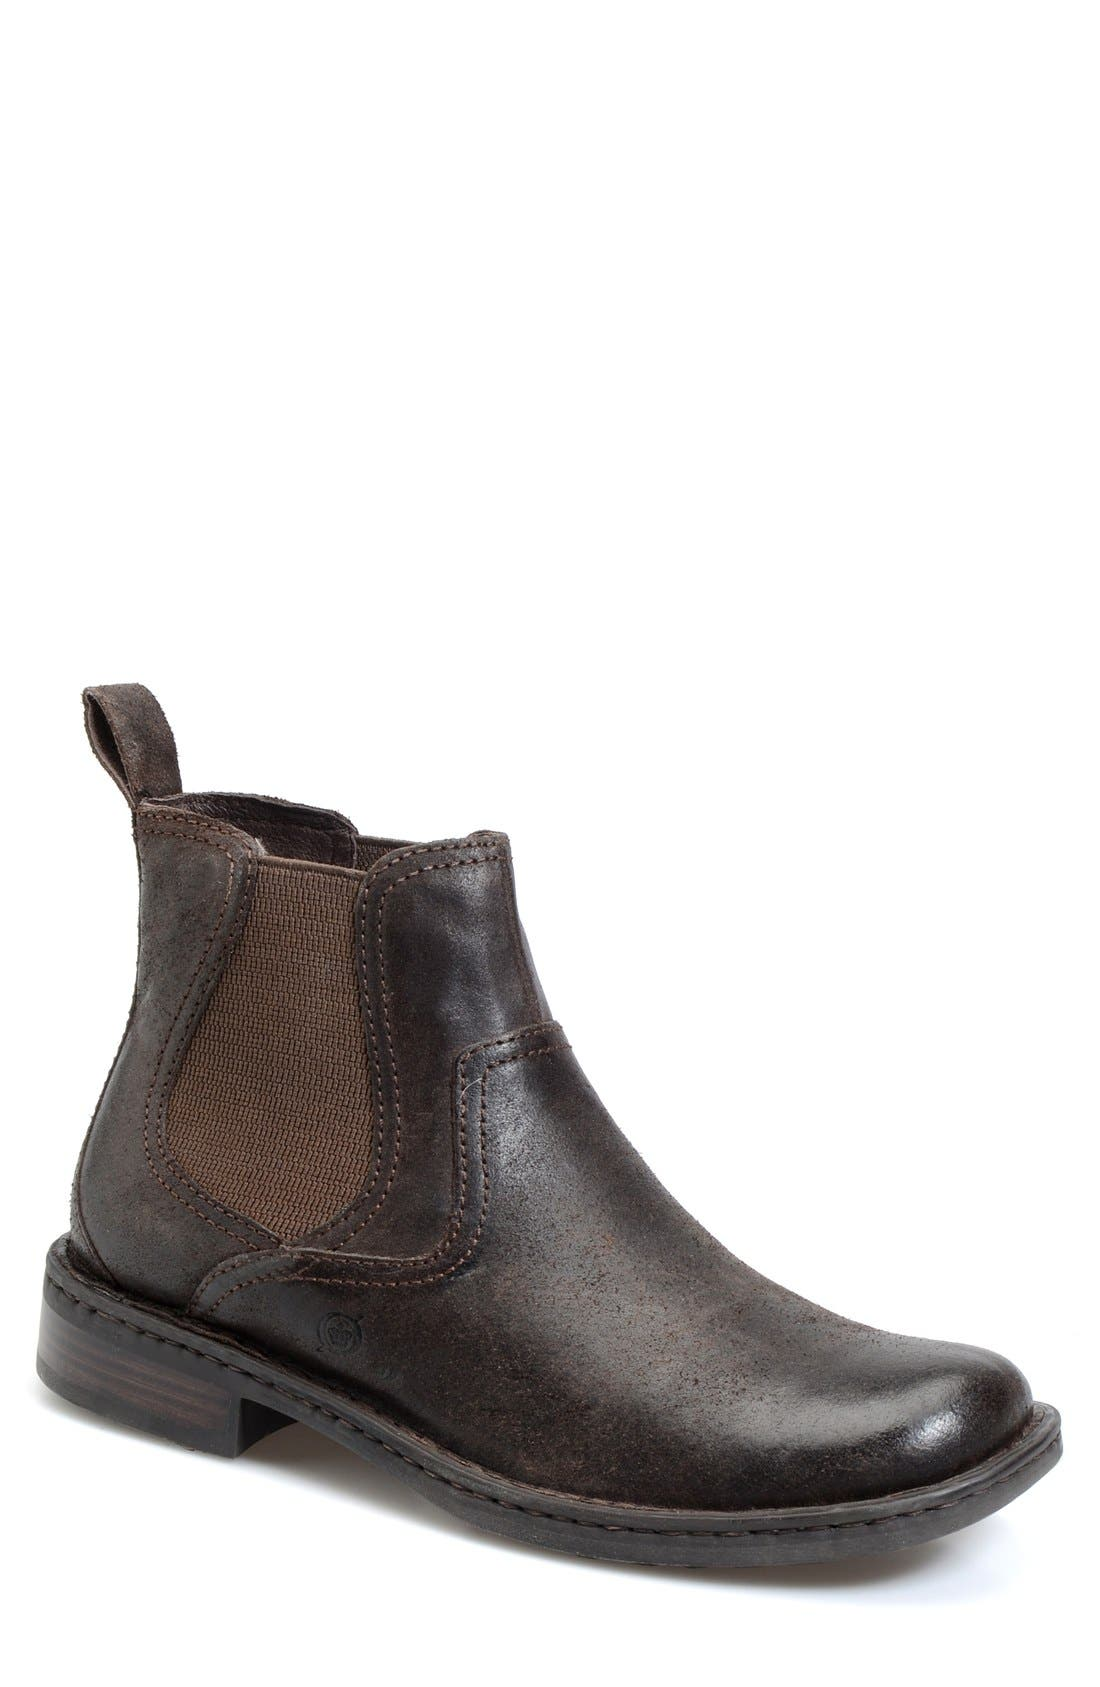 Alternate Image 1 Selected - Børn 'Hemlock' Boot (Online Only)